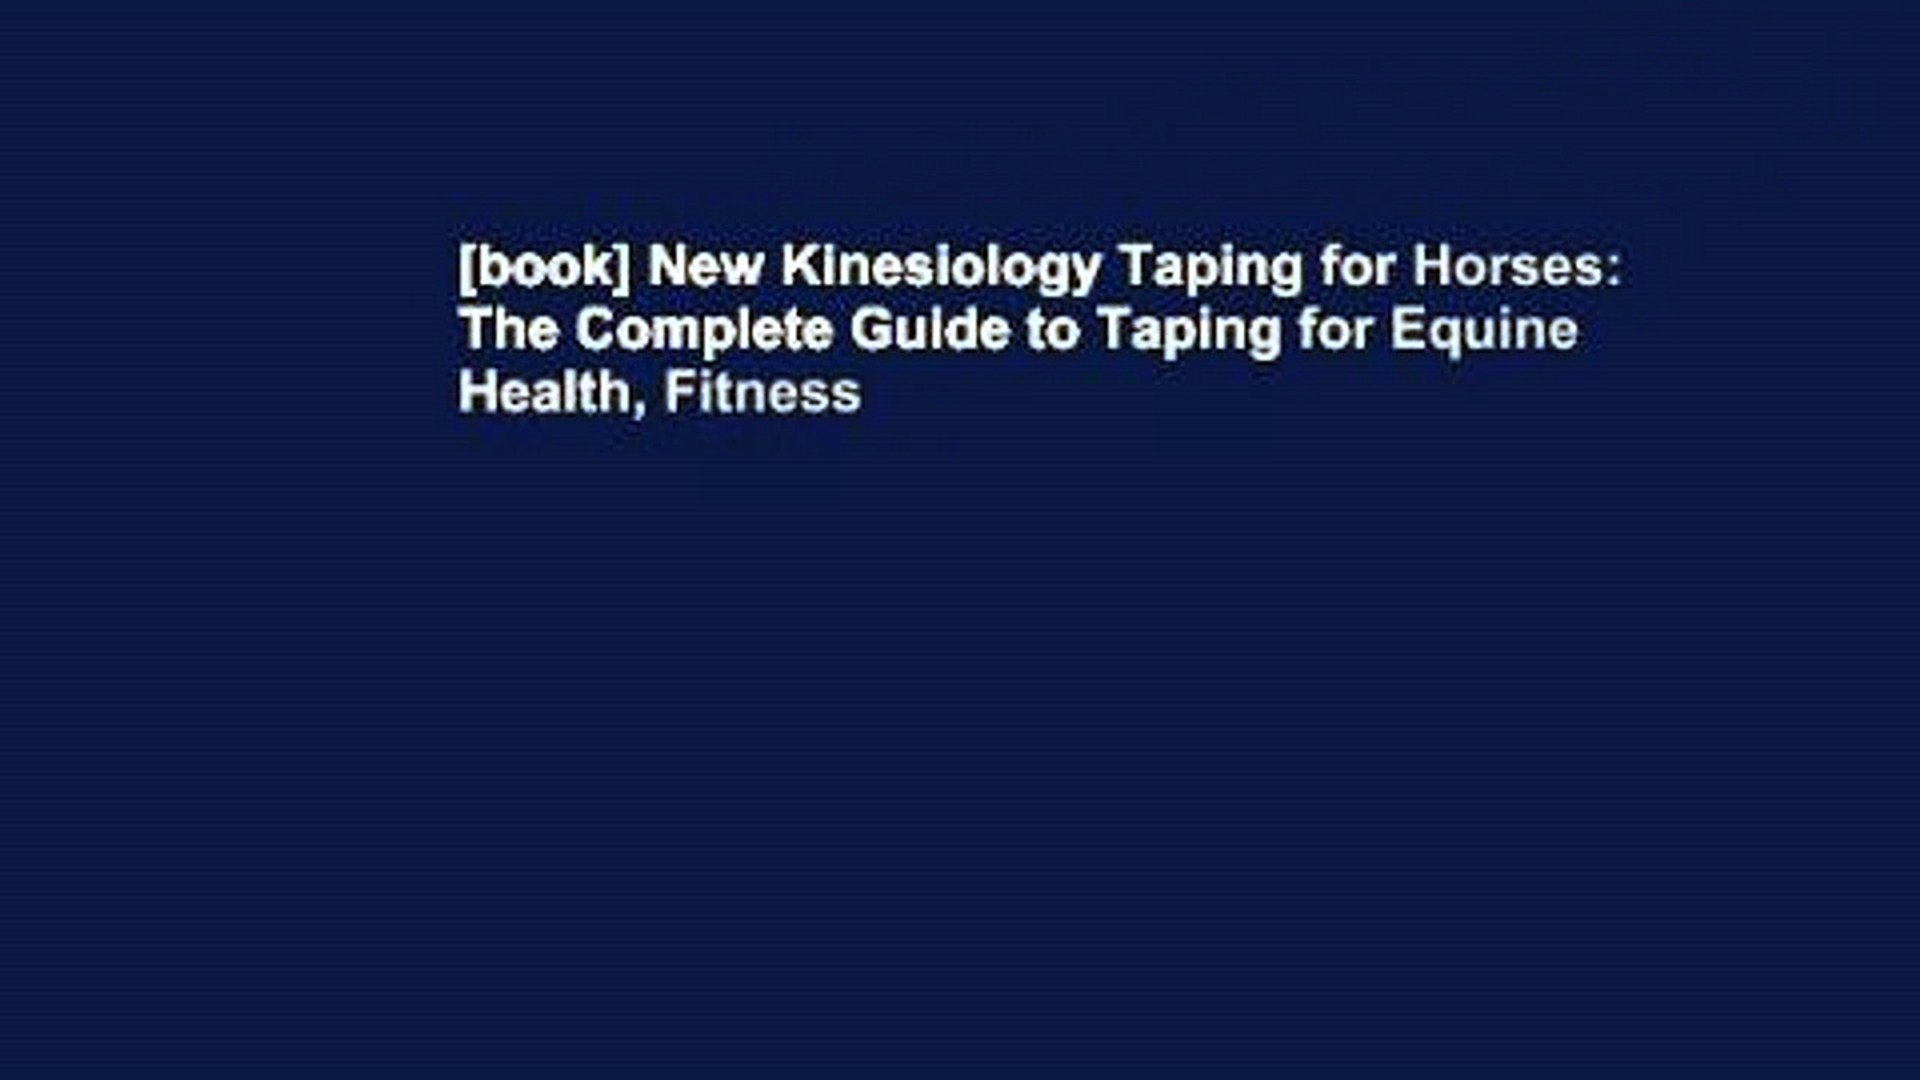 book] New Kinesiology Taping for Horses The Complete Guide to 1920x1080